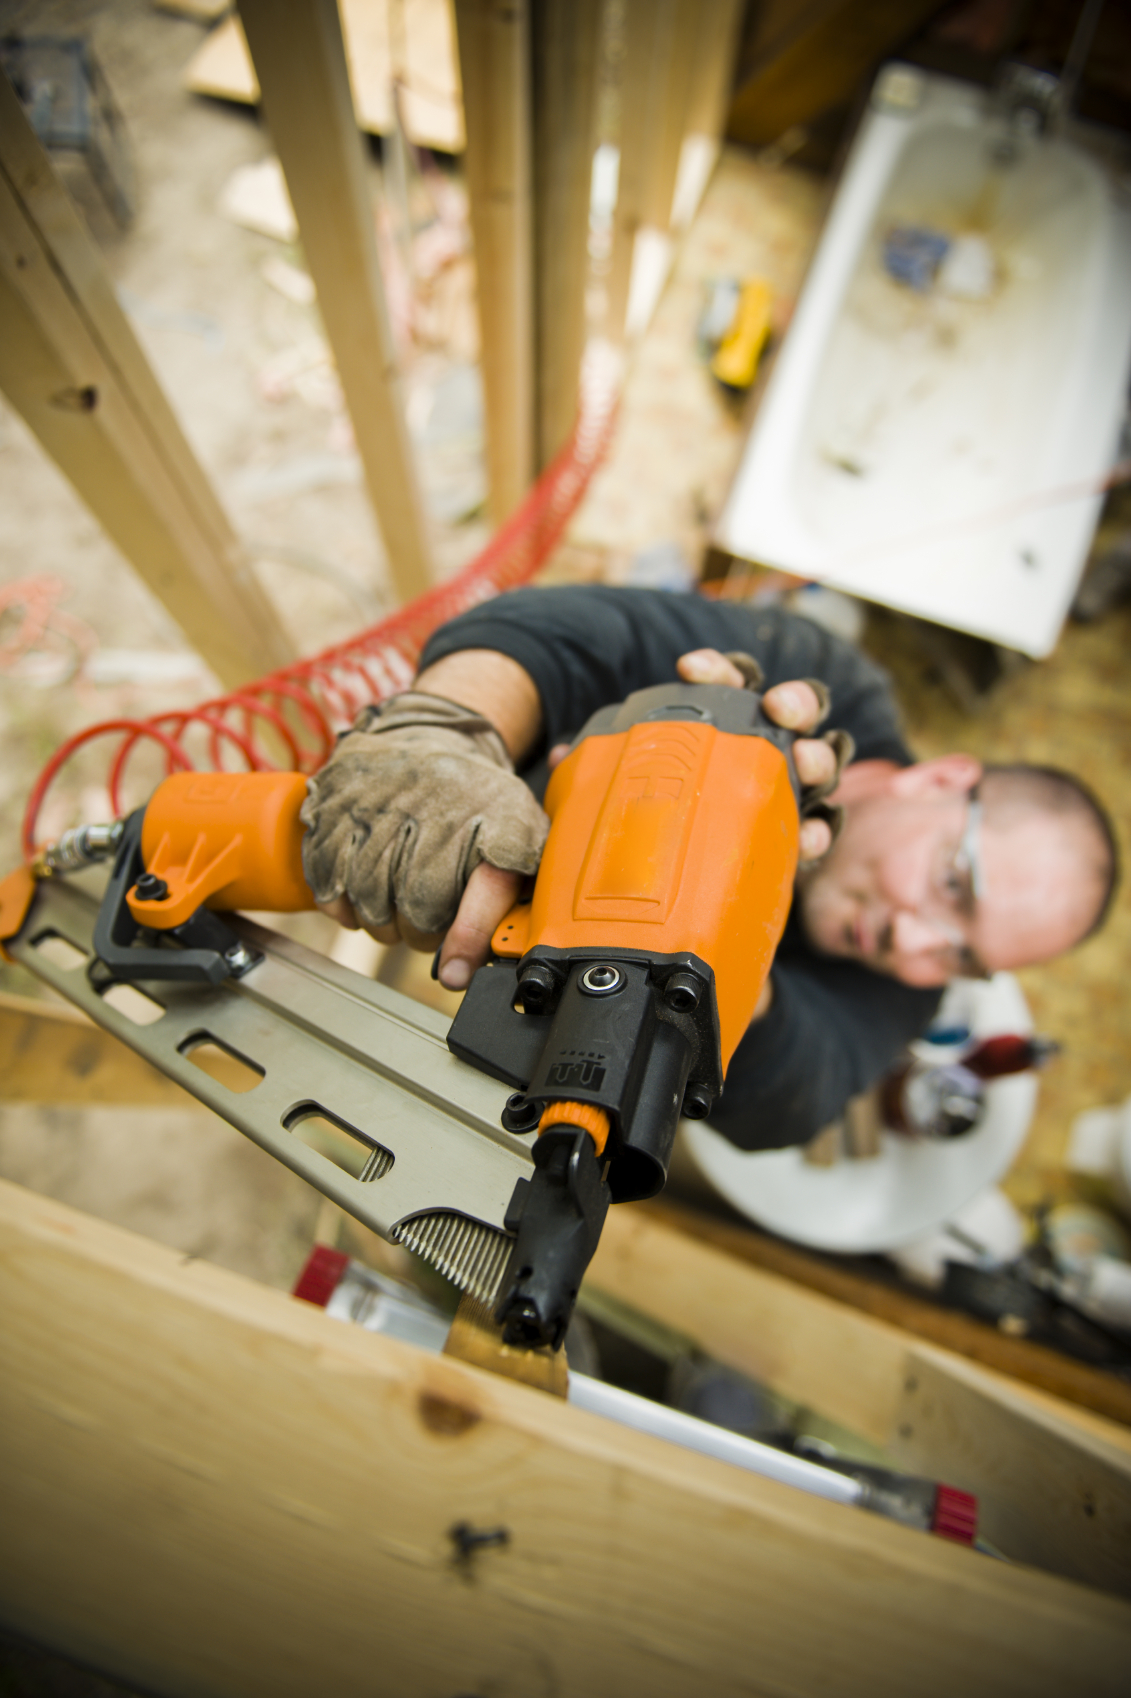 Causes of nail gun injuries | Pro Construction Guide